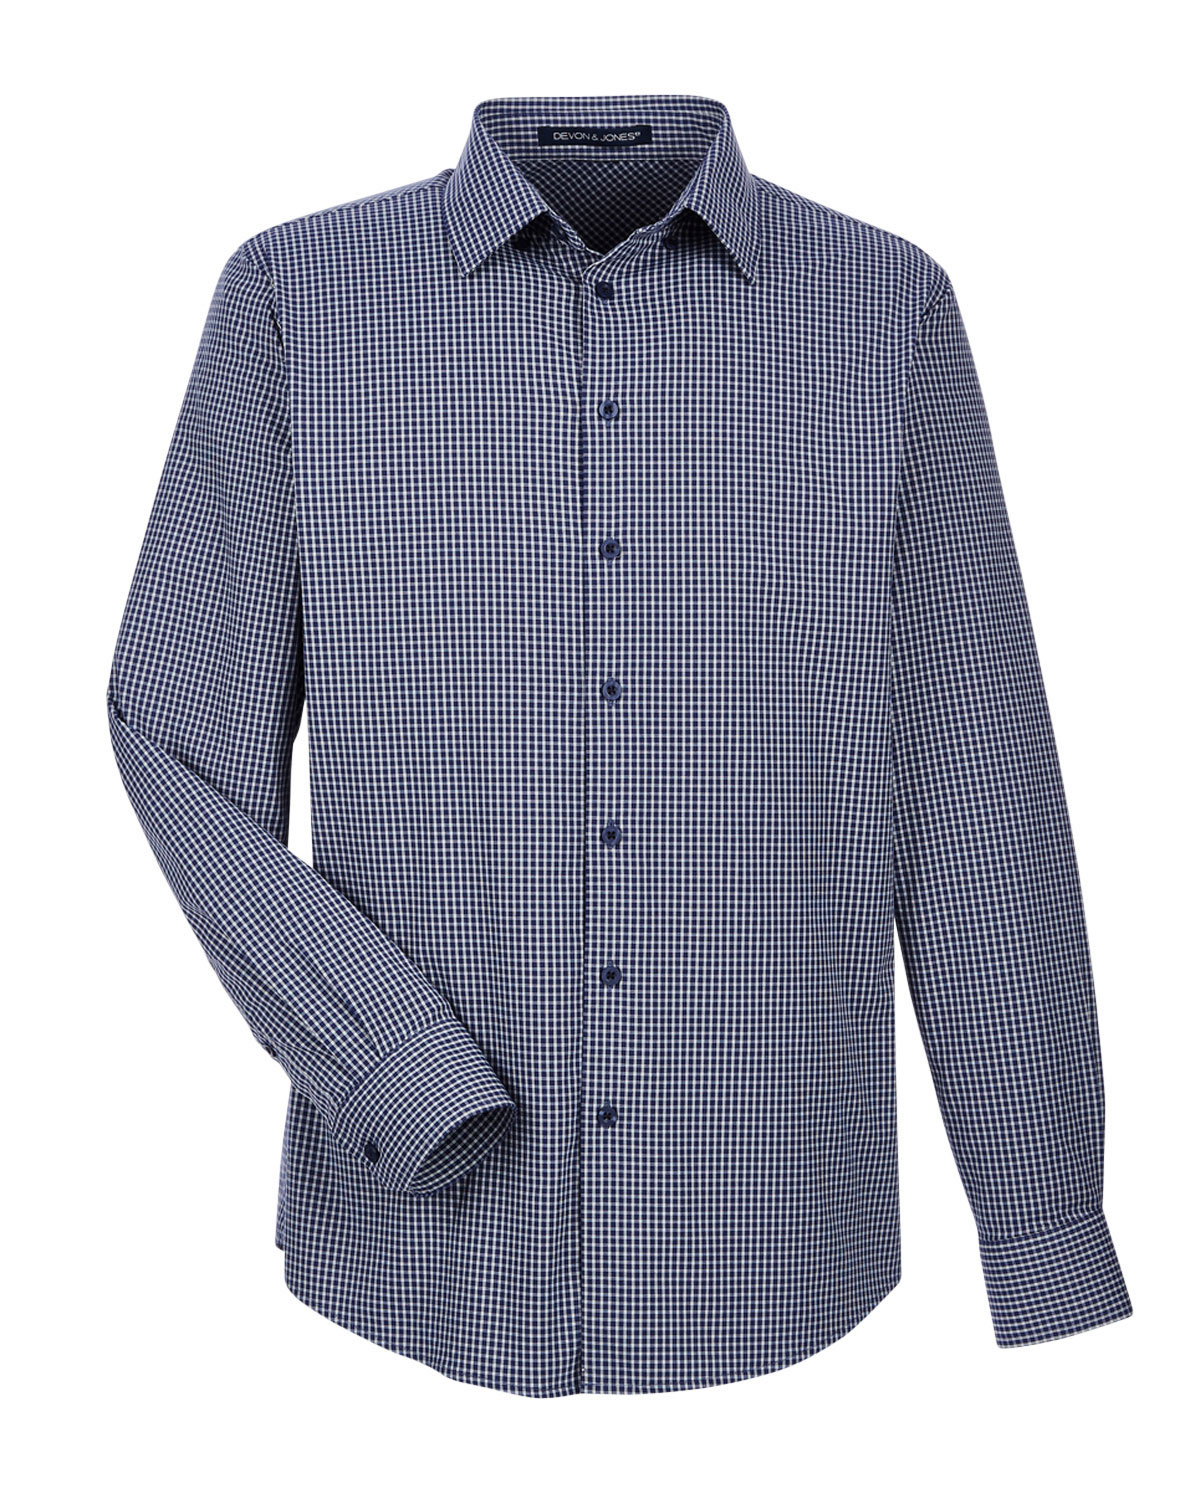 Mens CrownLux Performance Tonal Mini Check Shirt